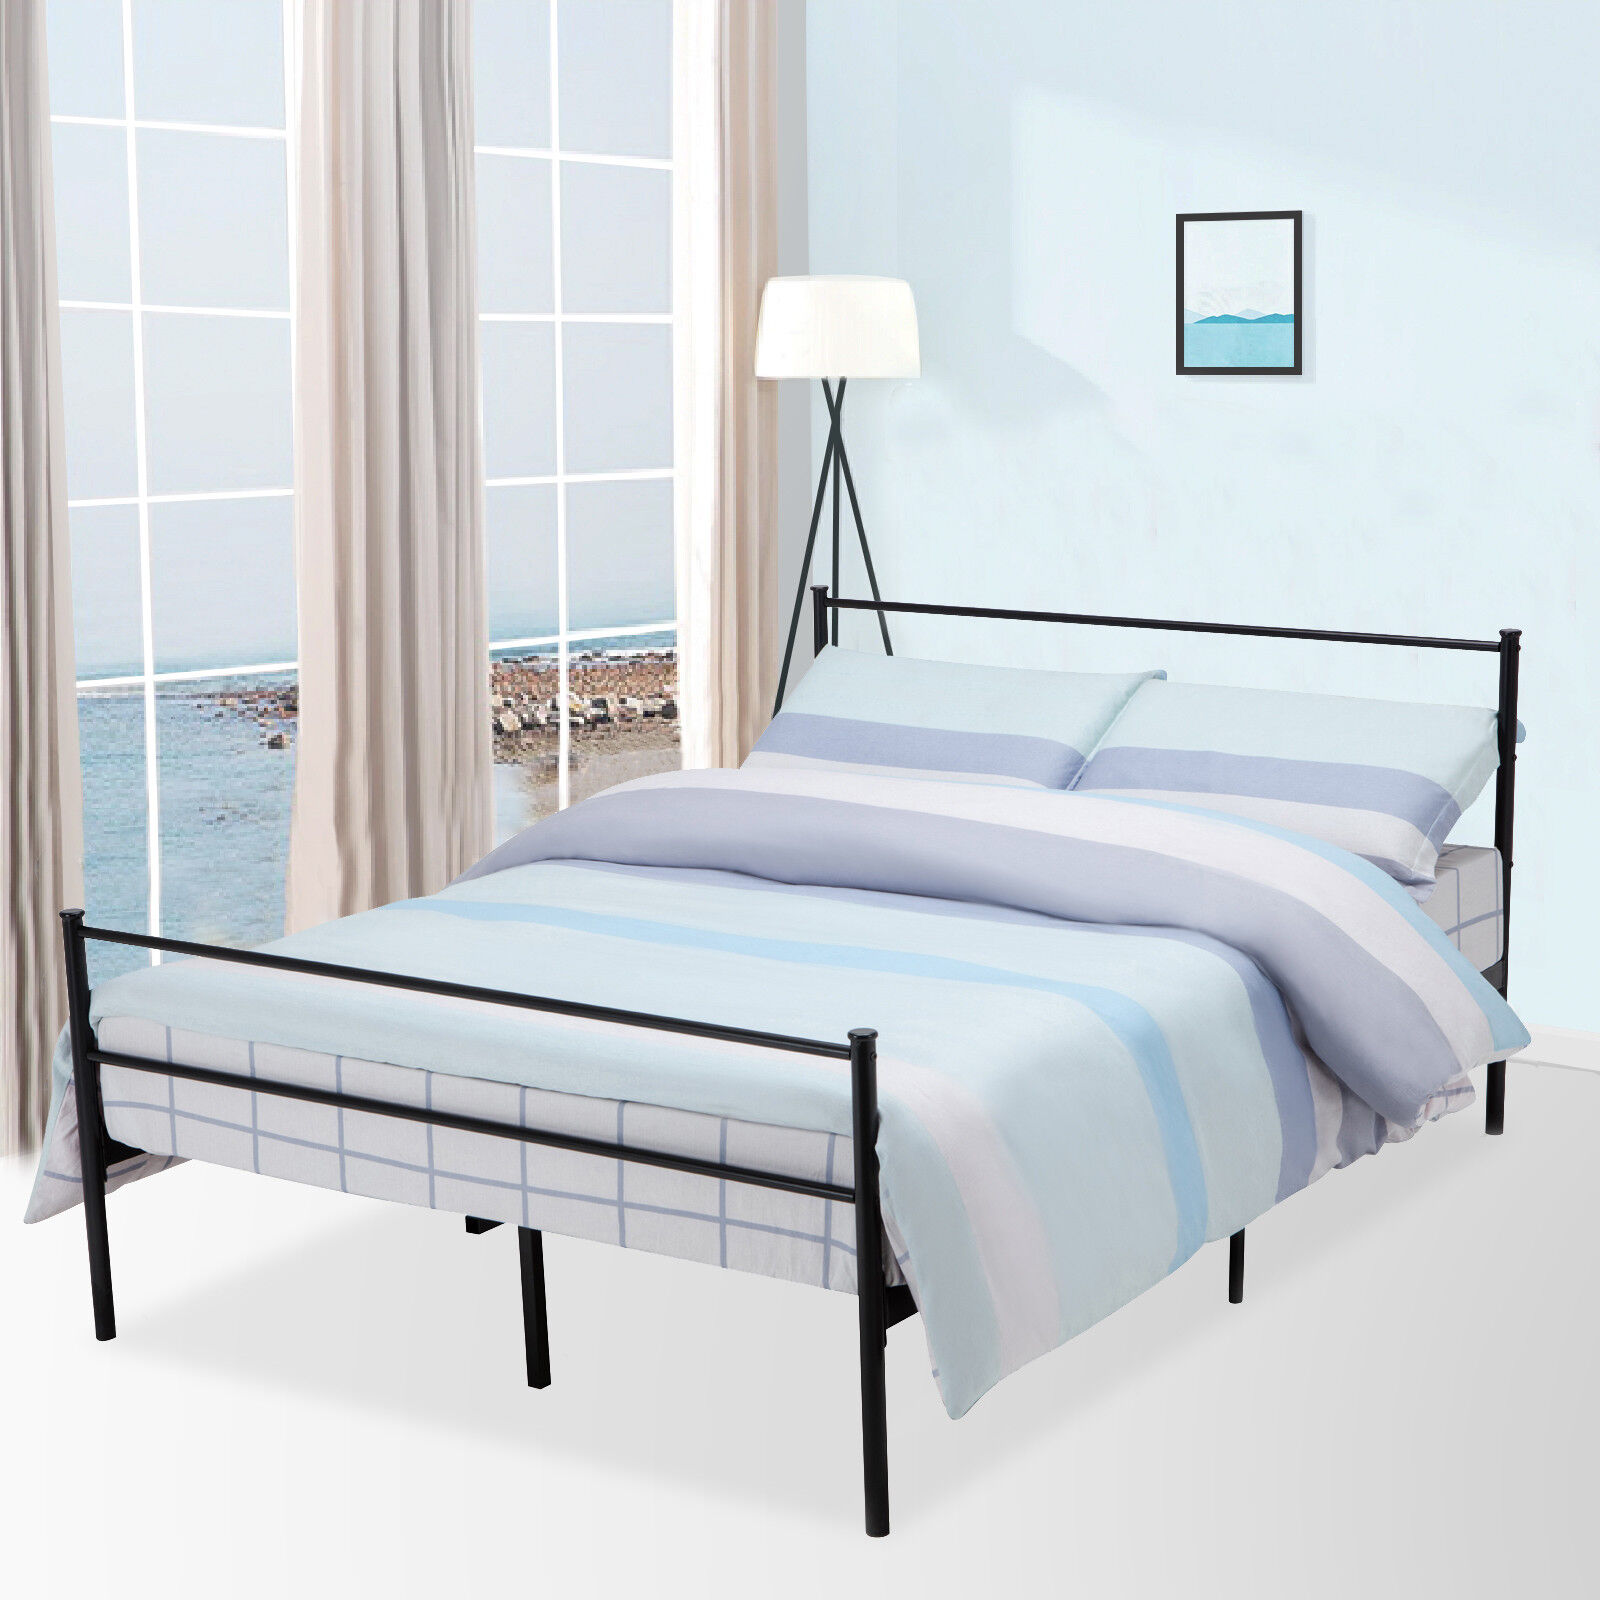 uk availability 62cd0 0fc3c Details about Queen Size Metal Bed Frame Platform Headboards 6 Leg with  Memory Foam Mattress